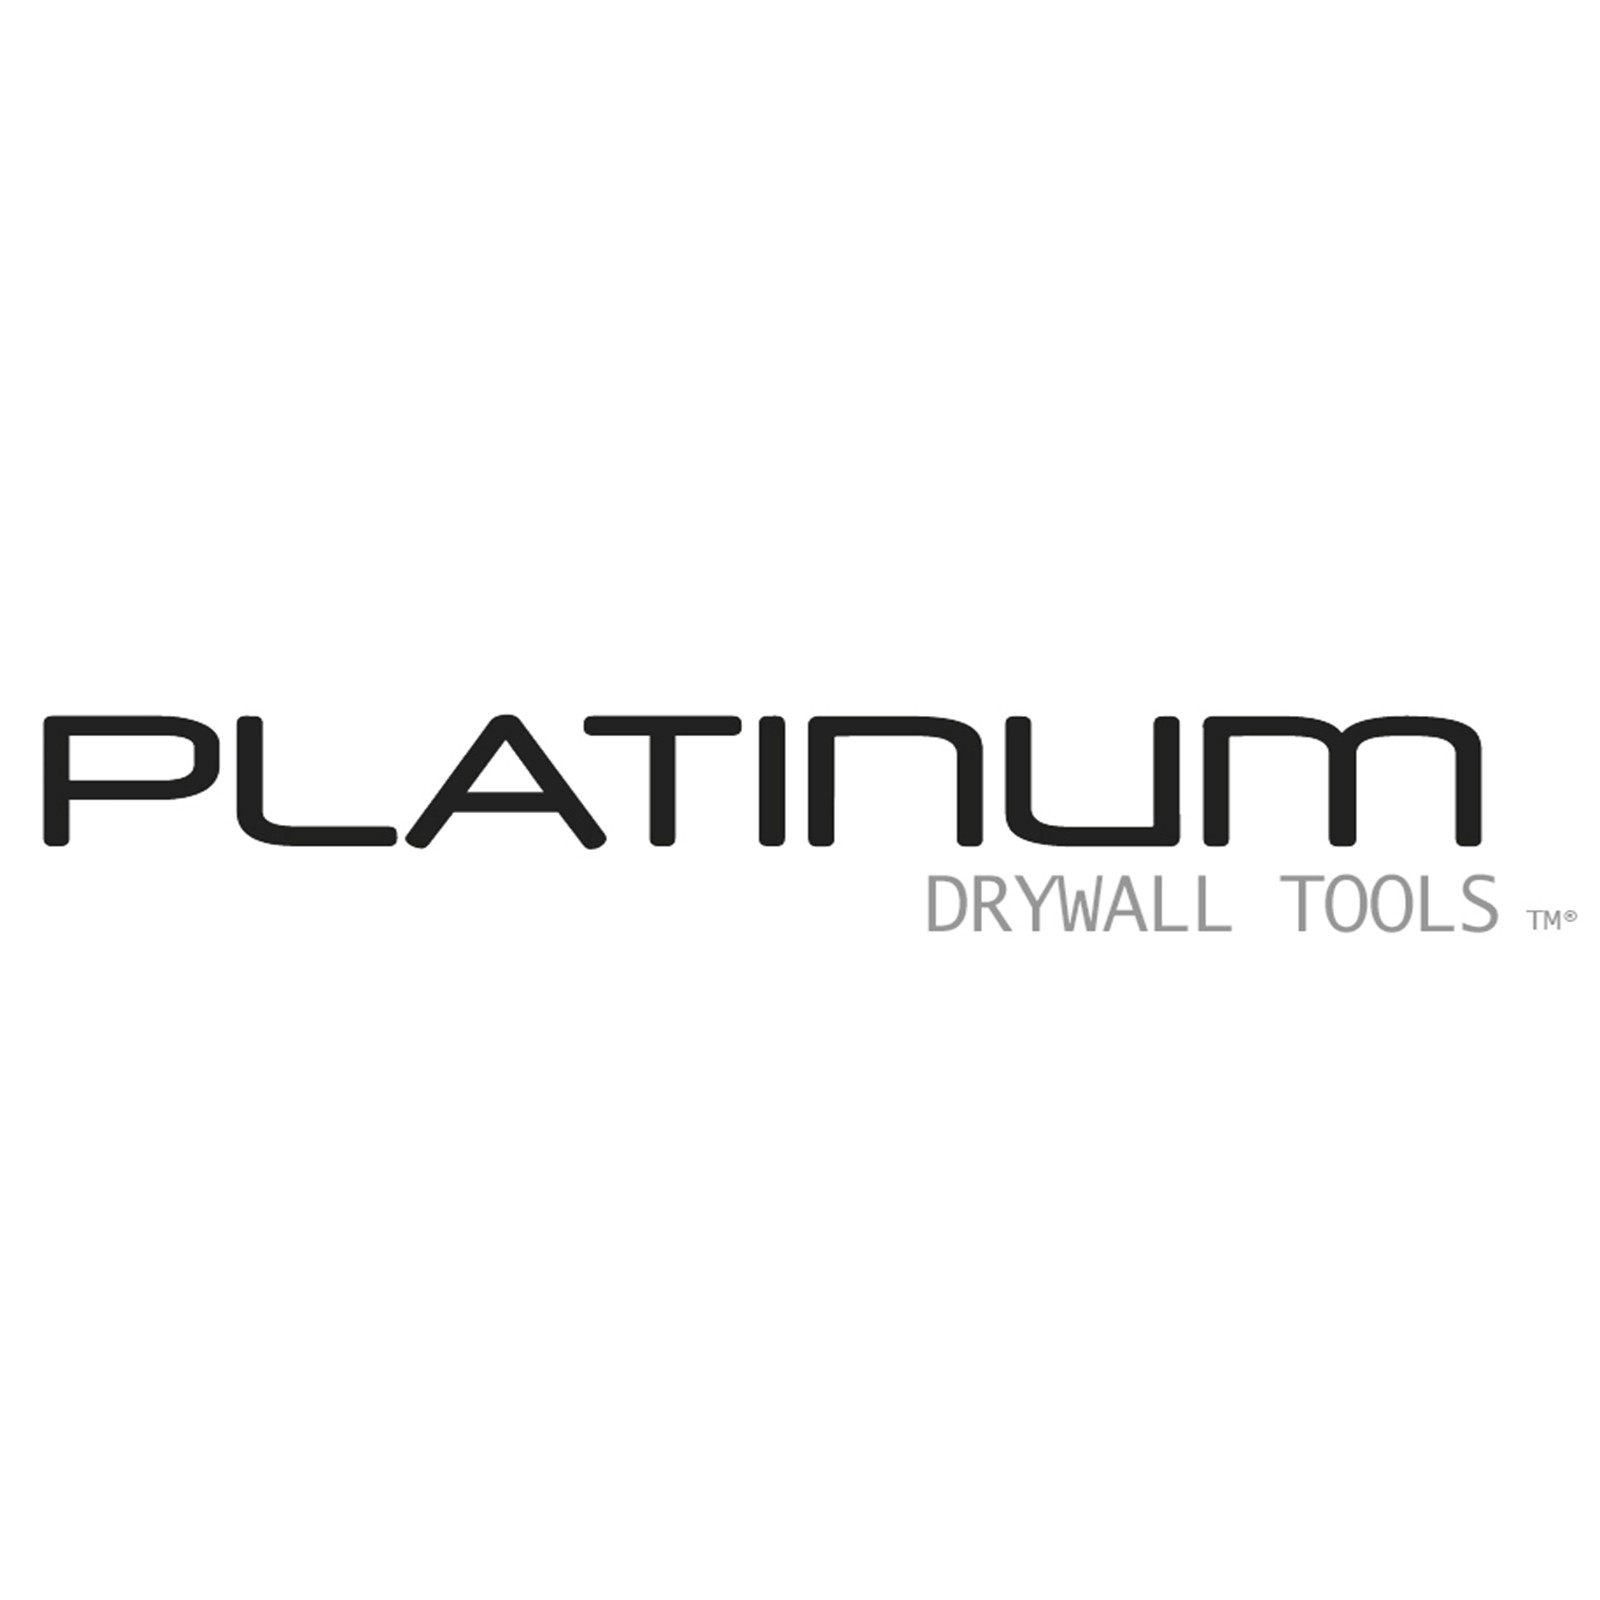 Platinum Drywall Tools